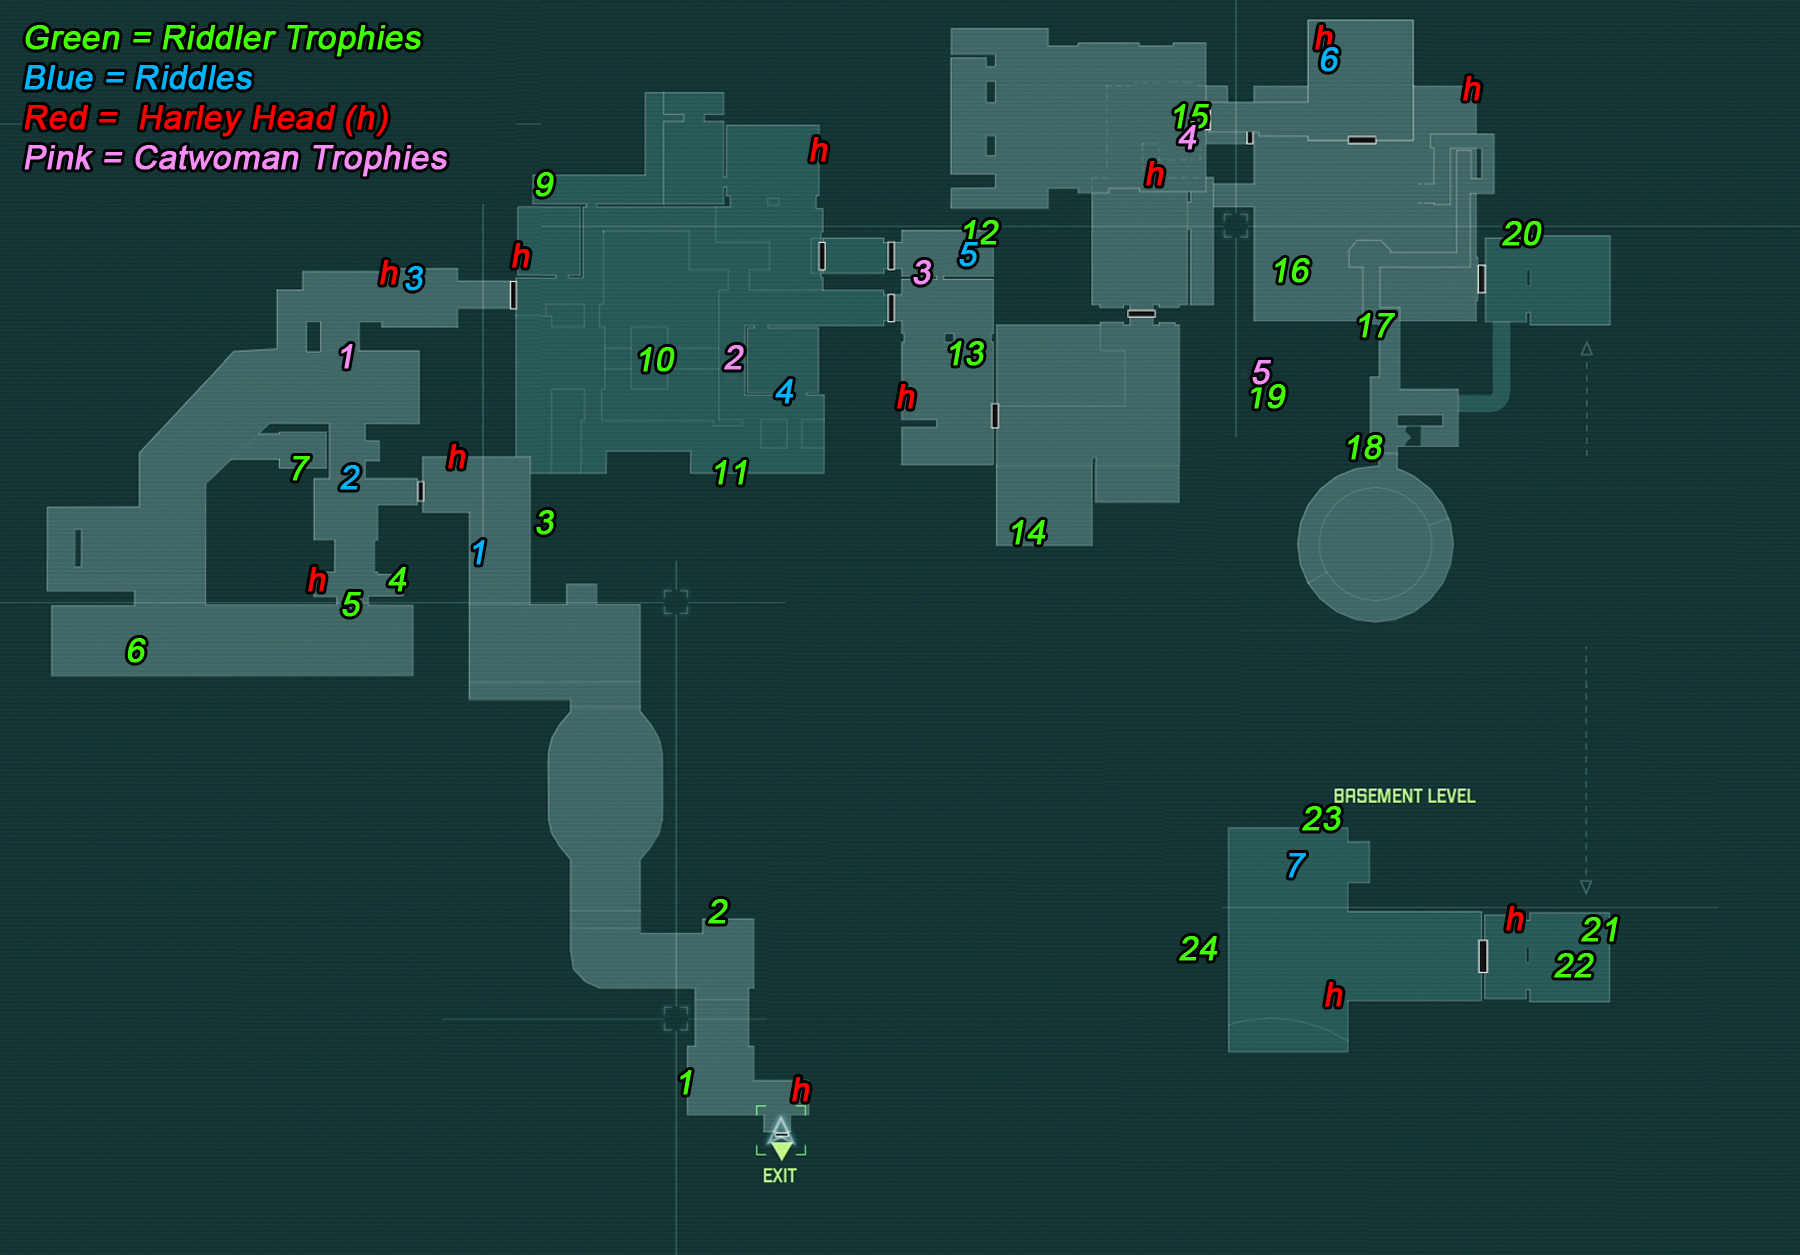 steel mill map batman arkham city riddler guide page 31 gamesradar  at bakdesigns.co